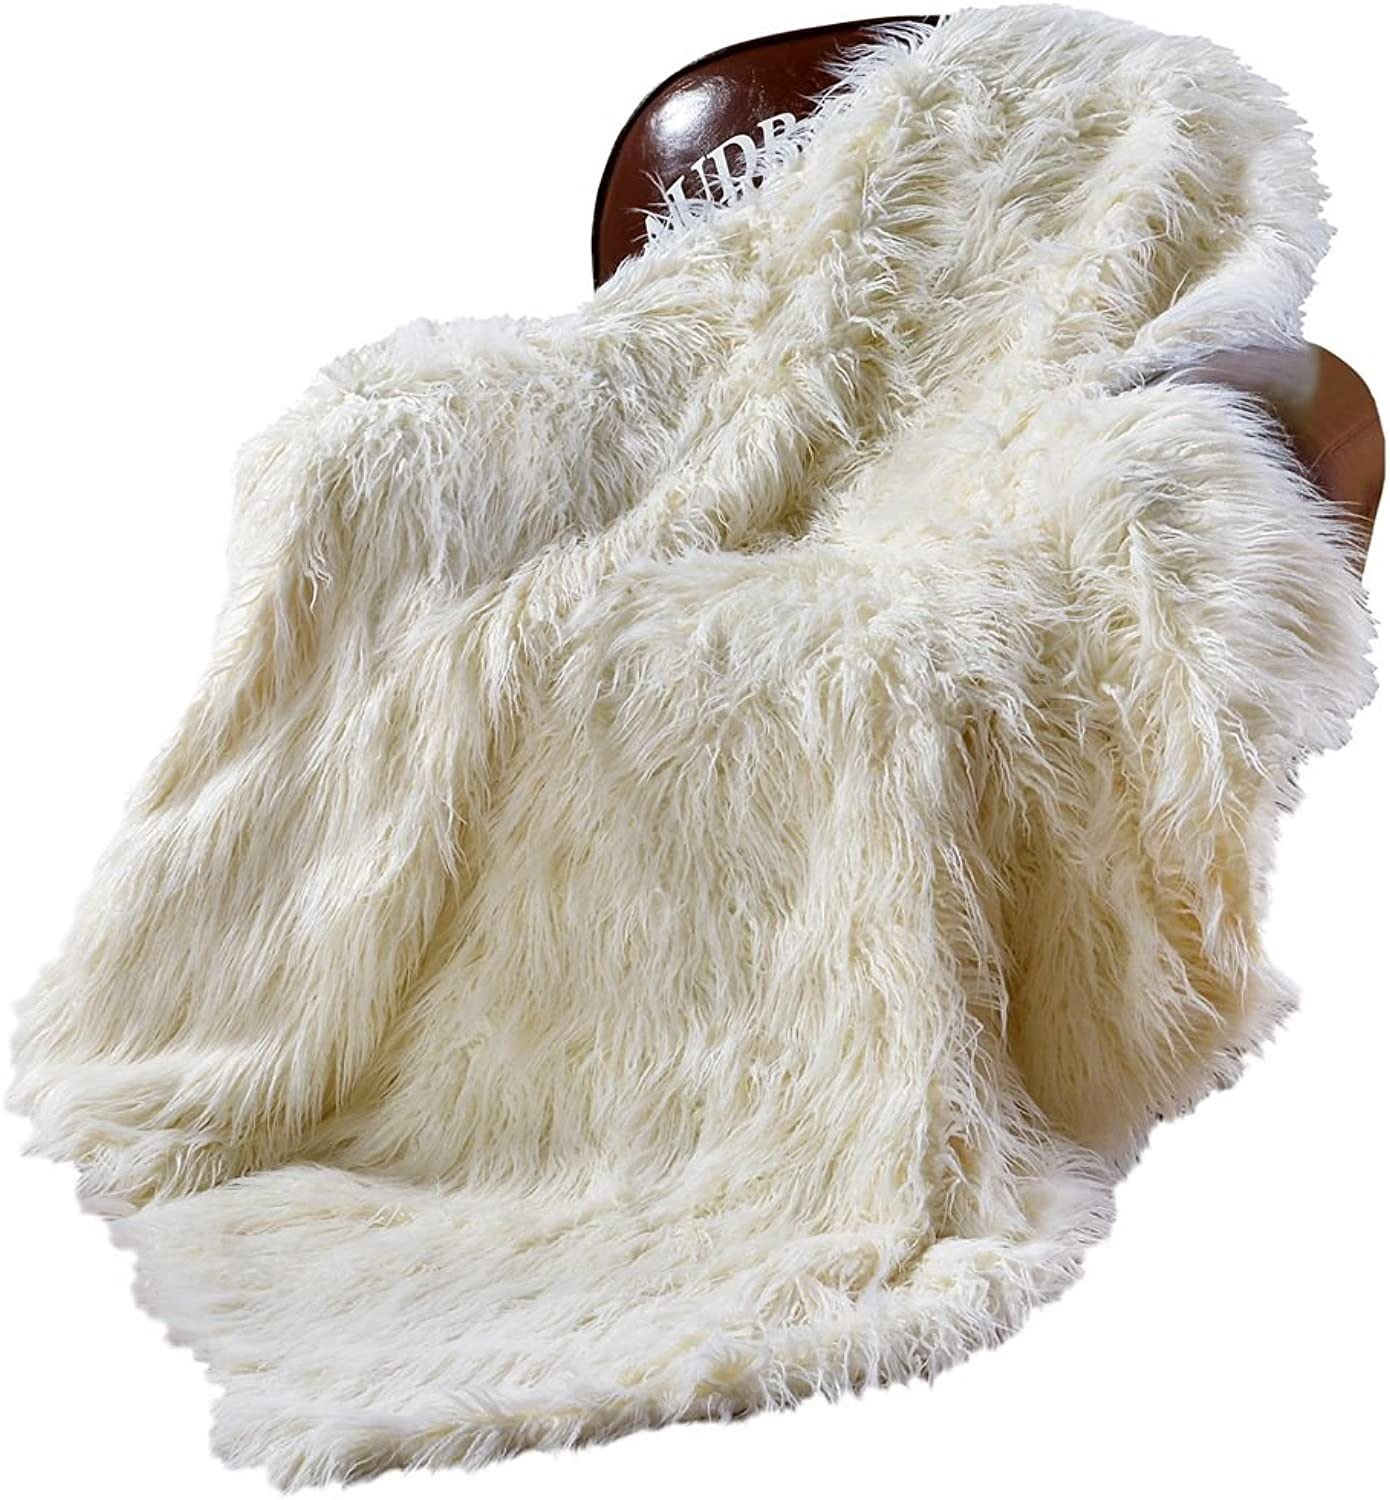 "DECOSY Ultra Soft Faux Fur Fuzzy Blanket 50""x 60"" - Long Pile Yarn Acrylic Sofa TV Blanket - Shaggy Mongolia Couch Blanket - Puffy Reversible Chair Blanket Ivory White"